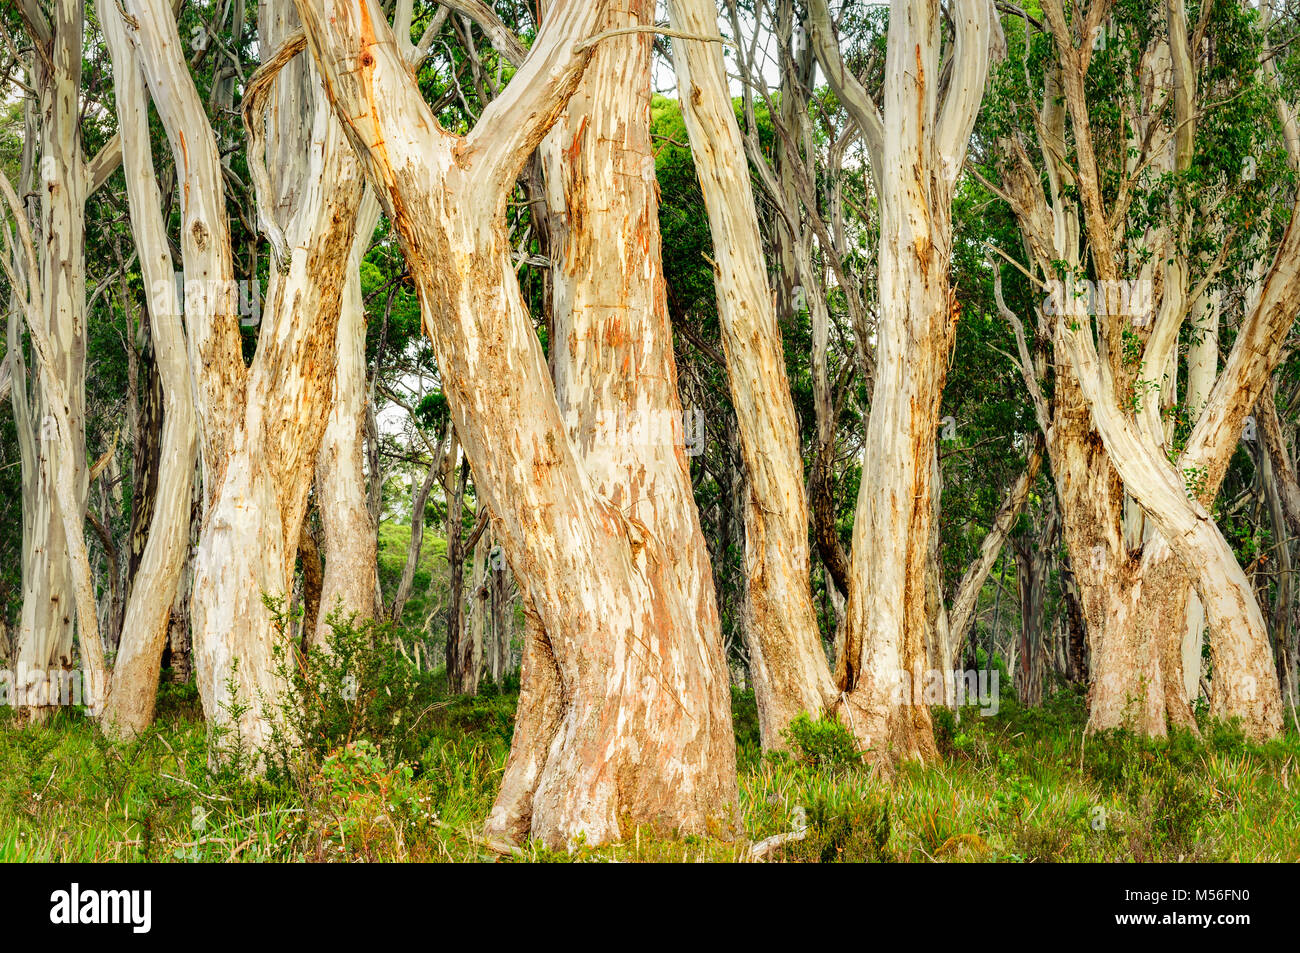 Snow Gum grove in Navarre Plains. - Stock Image